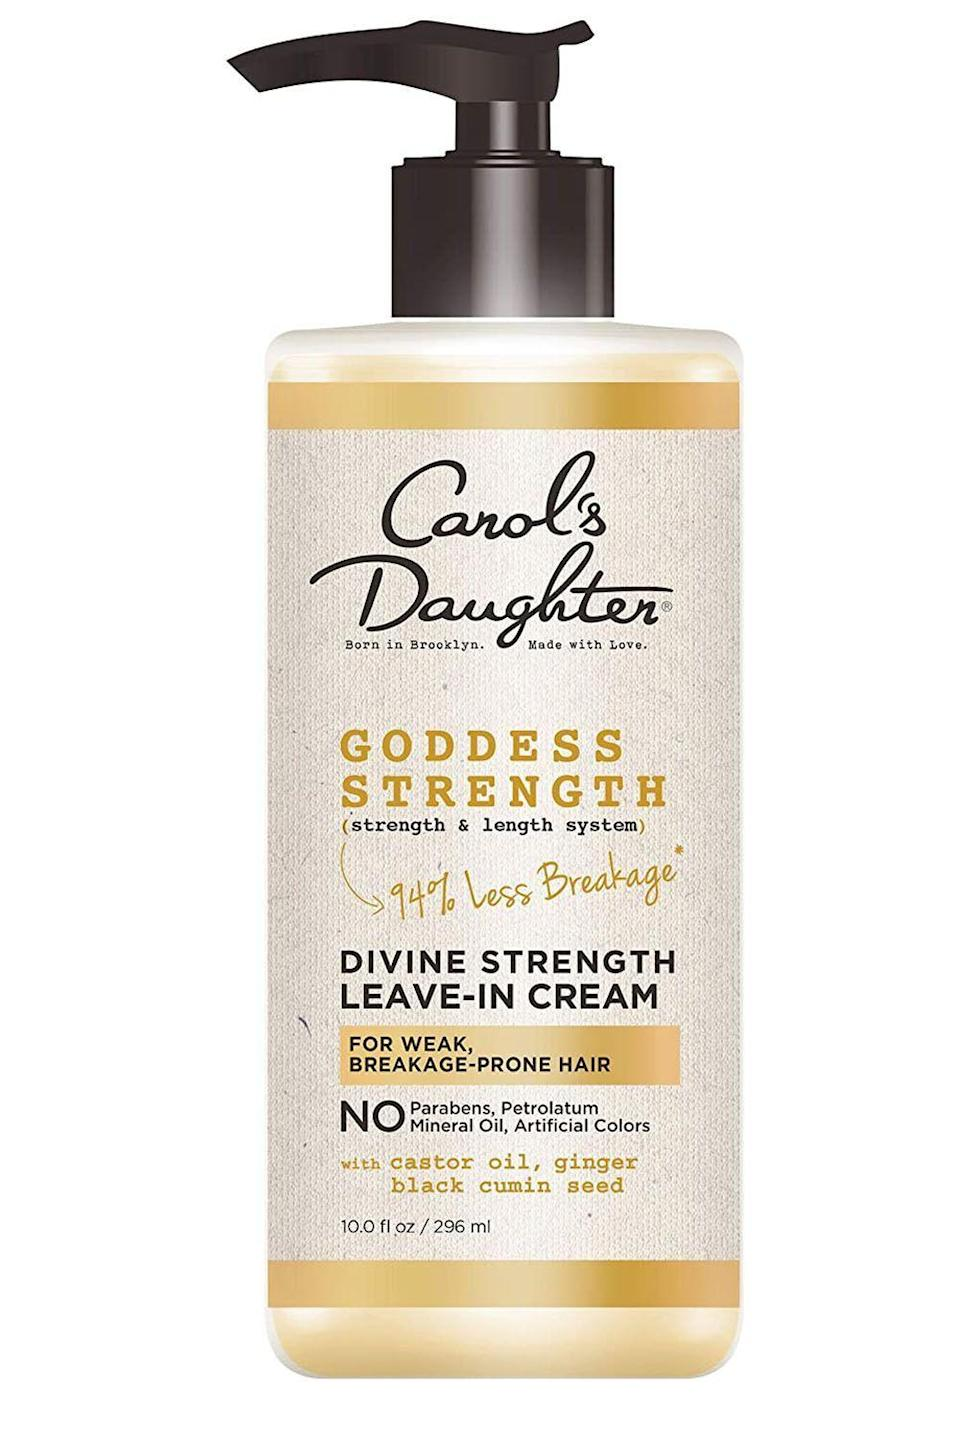 """<p><strong>Carol's Daughter</strong></p><p>amazon.com</p><p><strong>$10.49</strong></p><p><a href=""""https://www.amazon.com/dp/B07YFF1NQQ?tag=syn-yahoo-20&ascsubtag=%5Bartid%7C10049.g.33904669%5Bsrc%7Cyahoo-us"""" rel=""""nofollow noopener"""" target=""""_blank"""" data-ylk=""""slk:Shop Now"""" class=""""link rapid-noclick-resp"""">Shop Now</a></p><p>When it comes to natural hair that's both thick and <a href=""""https://www.cosmopolitan.com/style-beauty/beauty/a29873251/how-to-fix-dry-hair-tips/"""" rel=""""nofollow noopener"""" target=""""_blank"""" data-ylk=""""slk:dry"""" class=""""link rapid-noclick-resp"""">dry</a>, you need a leave-in conditioner that won't just sit on your curls—it needs to penetrate. The medley of <strong>castor oil, black cumin seed, and ginger round out this moisture-retaining formula</strong>, which makes its way all the way down to your roots to get (and keep) your curls hydrated. </p>"""